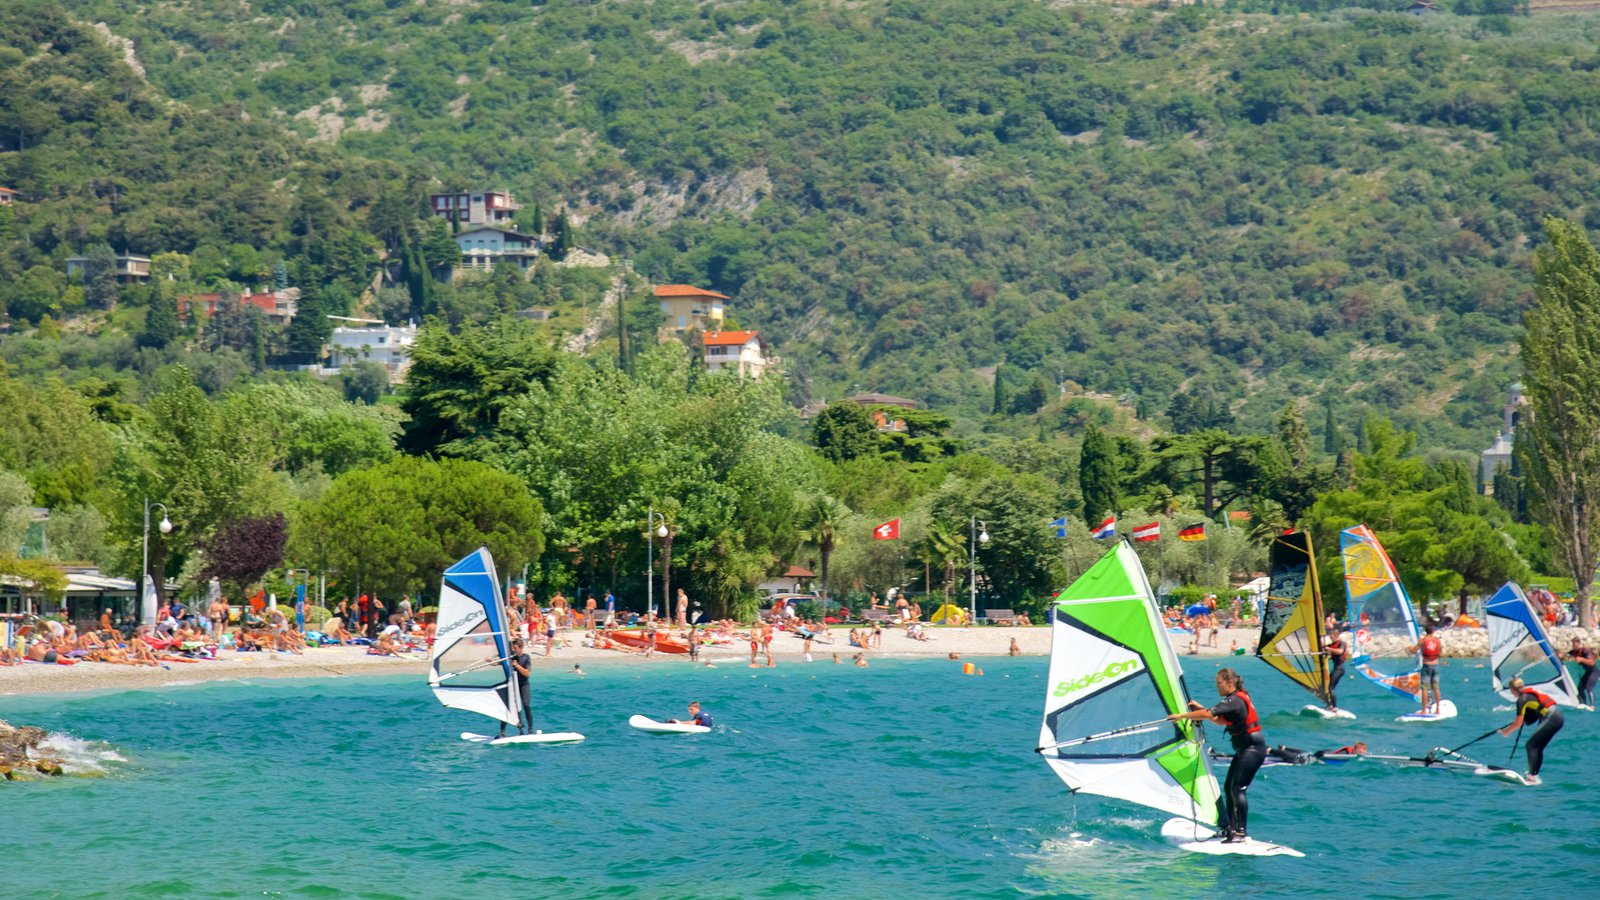 Nago-Torbole which includes a beach, windsurfing and general coastal views